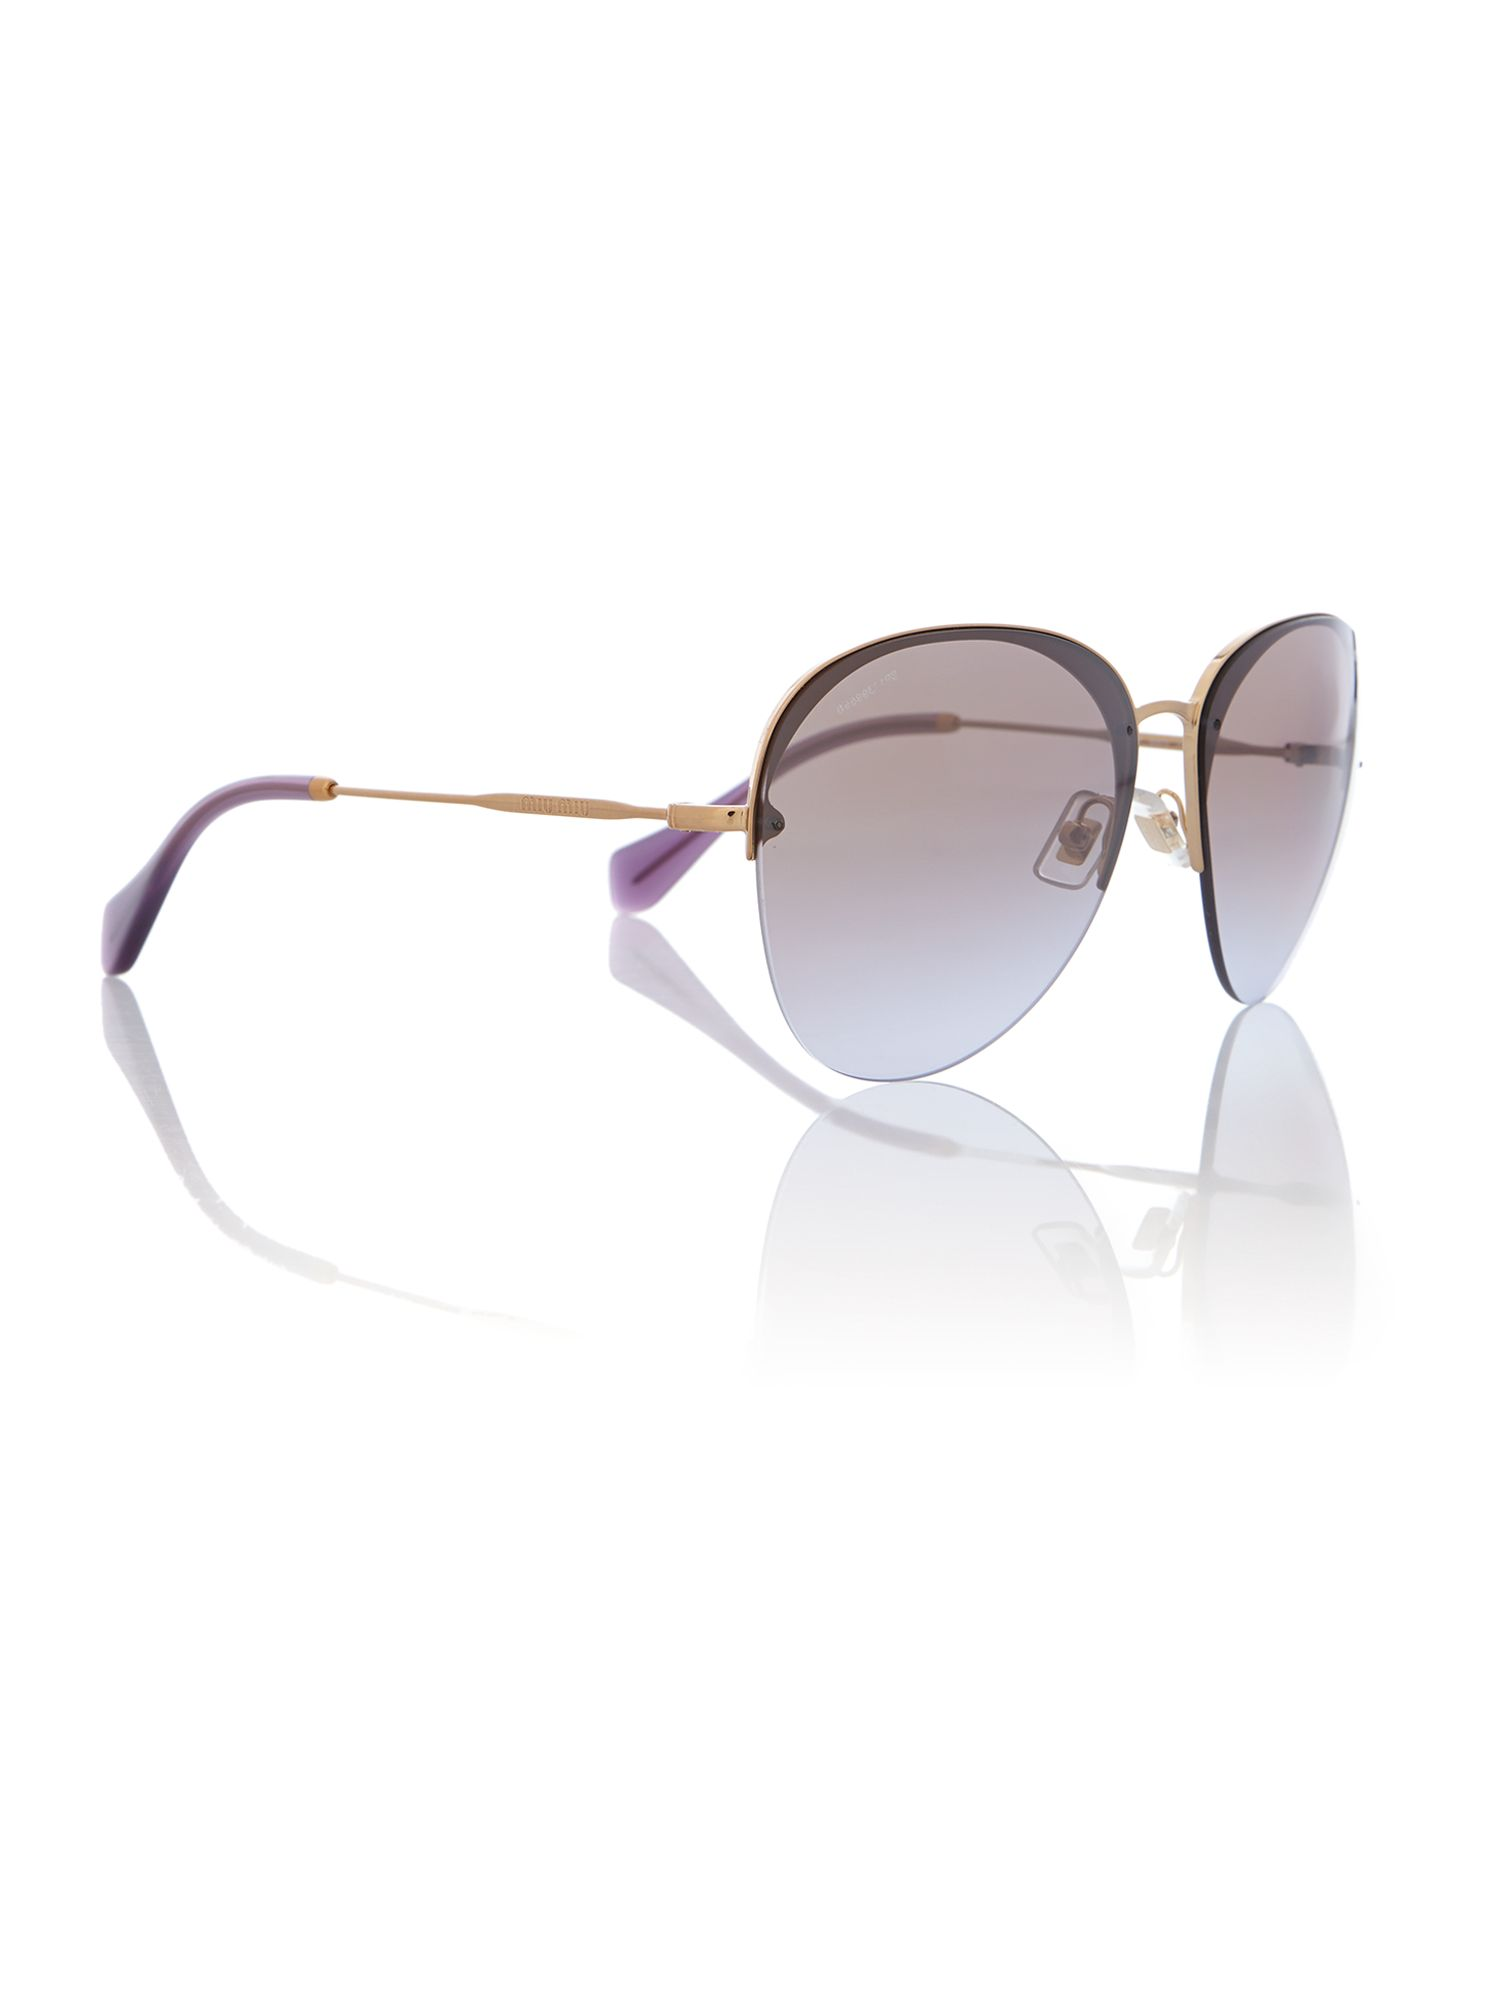 Mu 53ps ladies pilot sunglasses